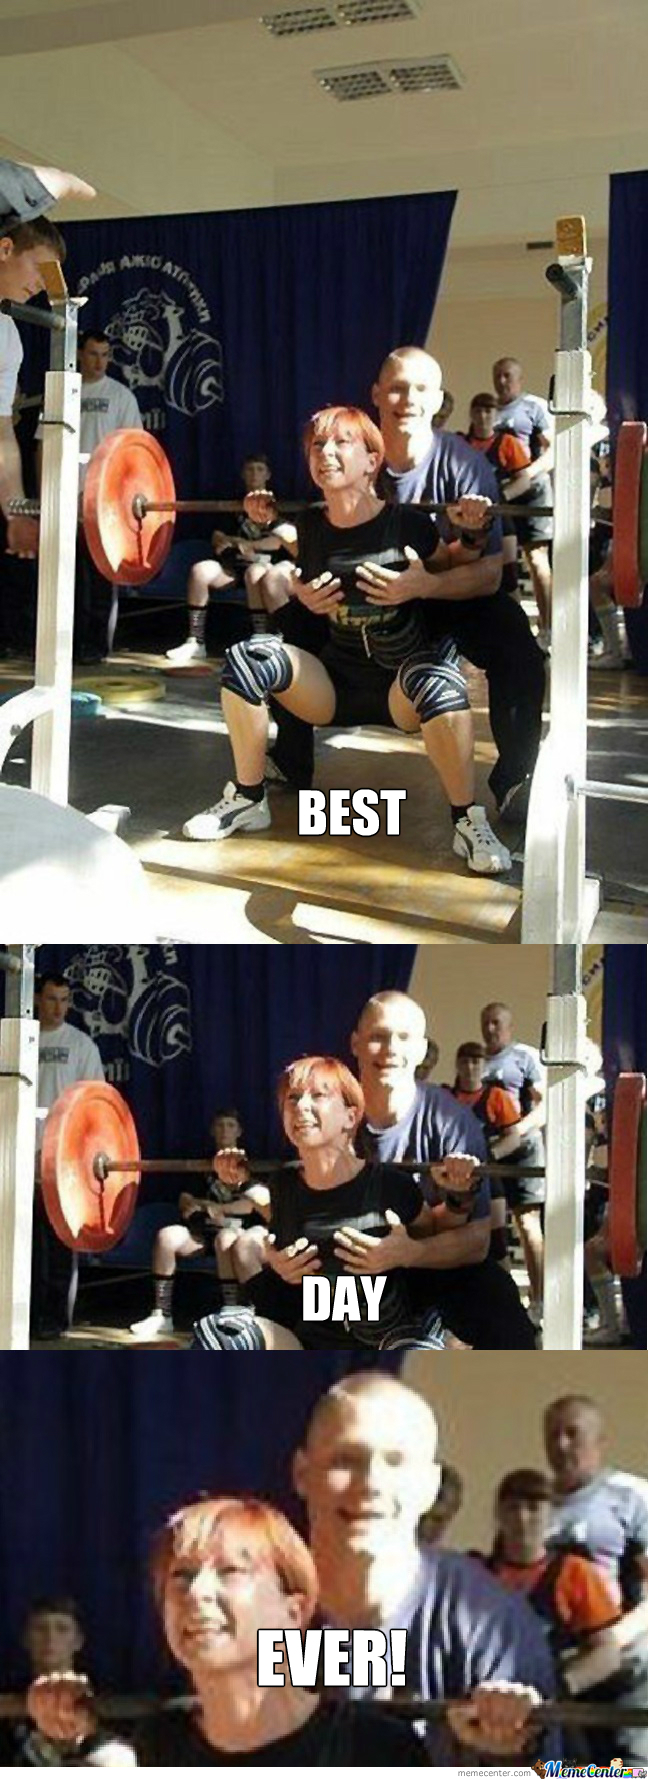 Squat's Best Day